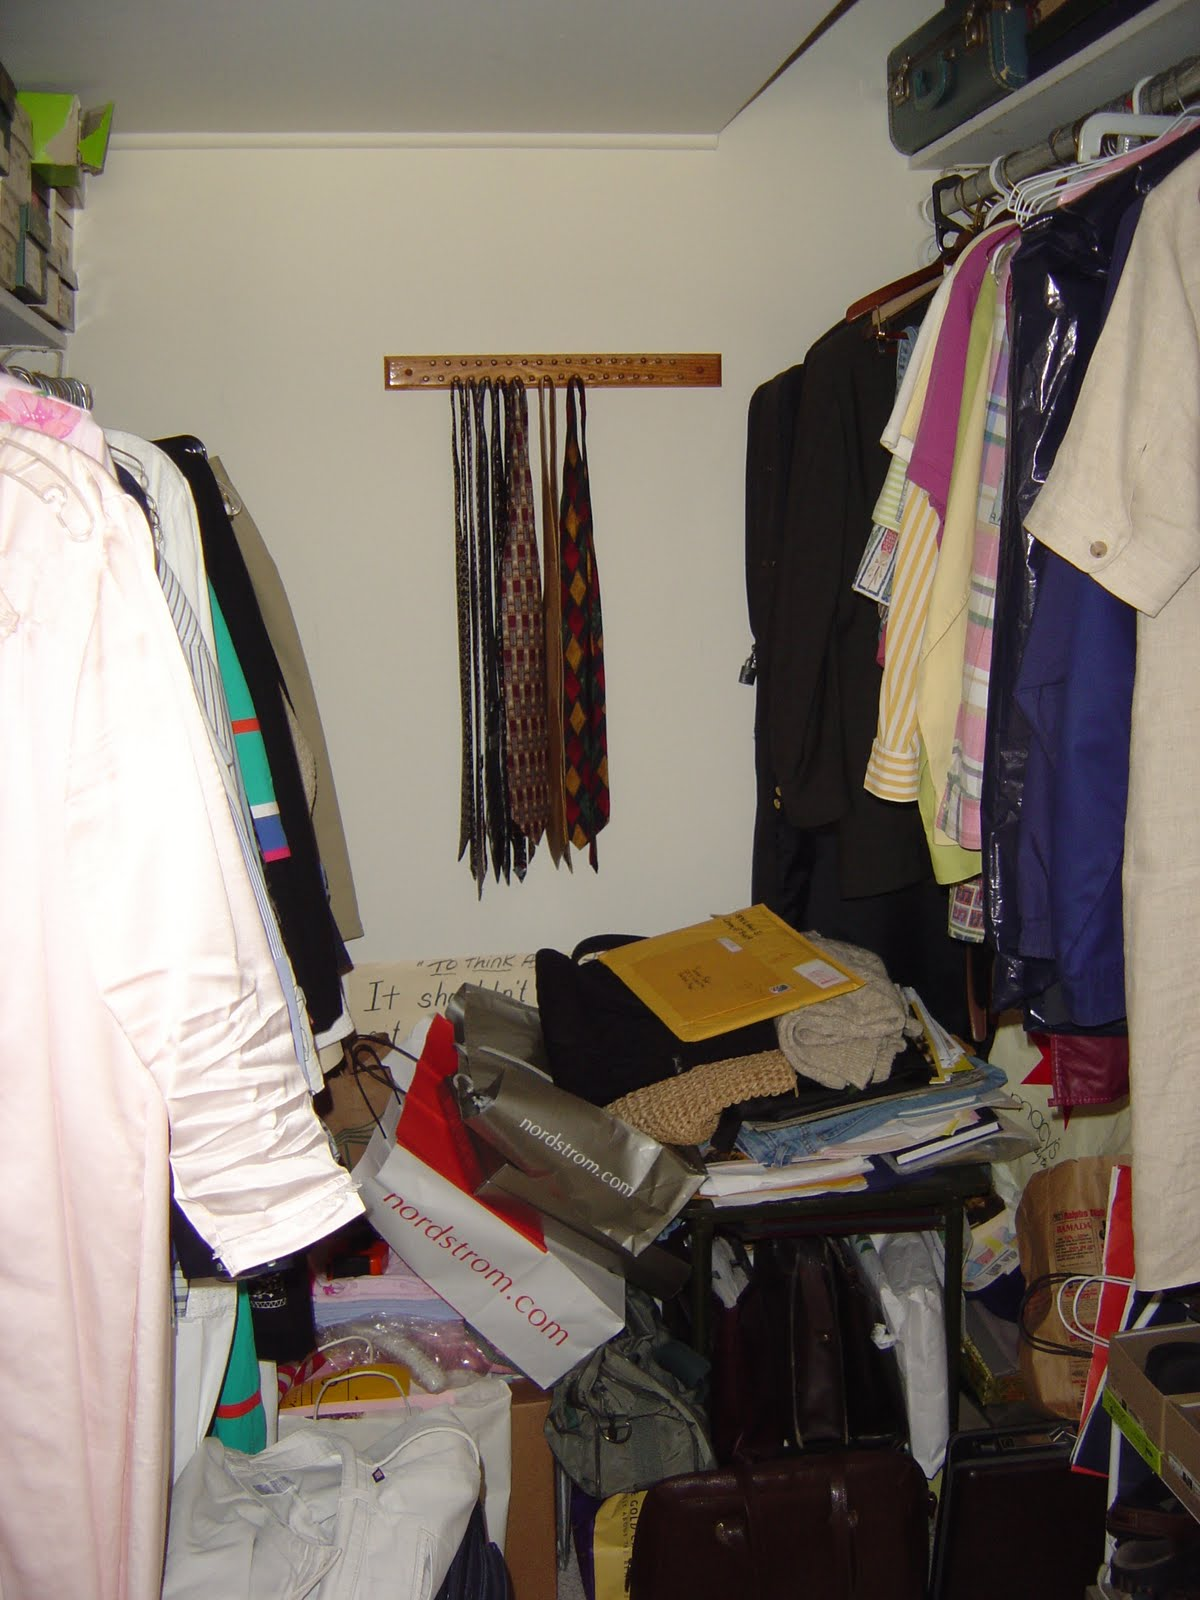 Organizing Made Fun: How I organize my bedroom: My closet!